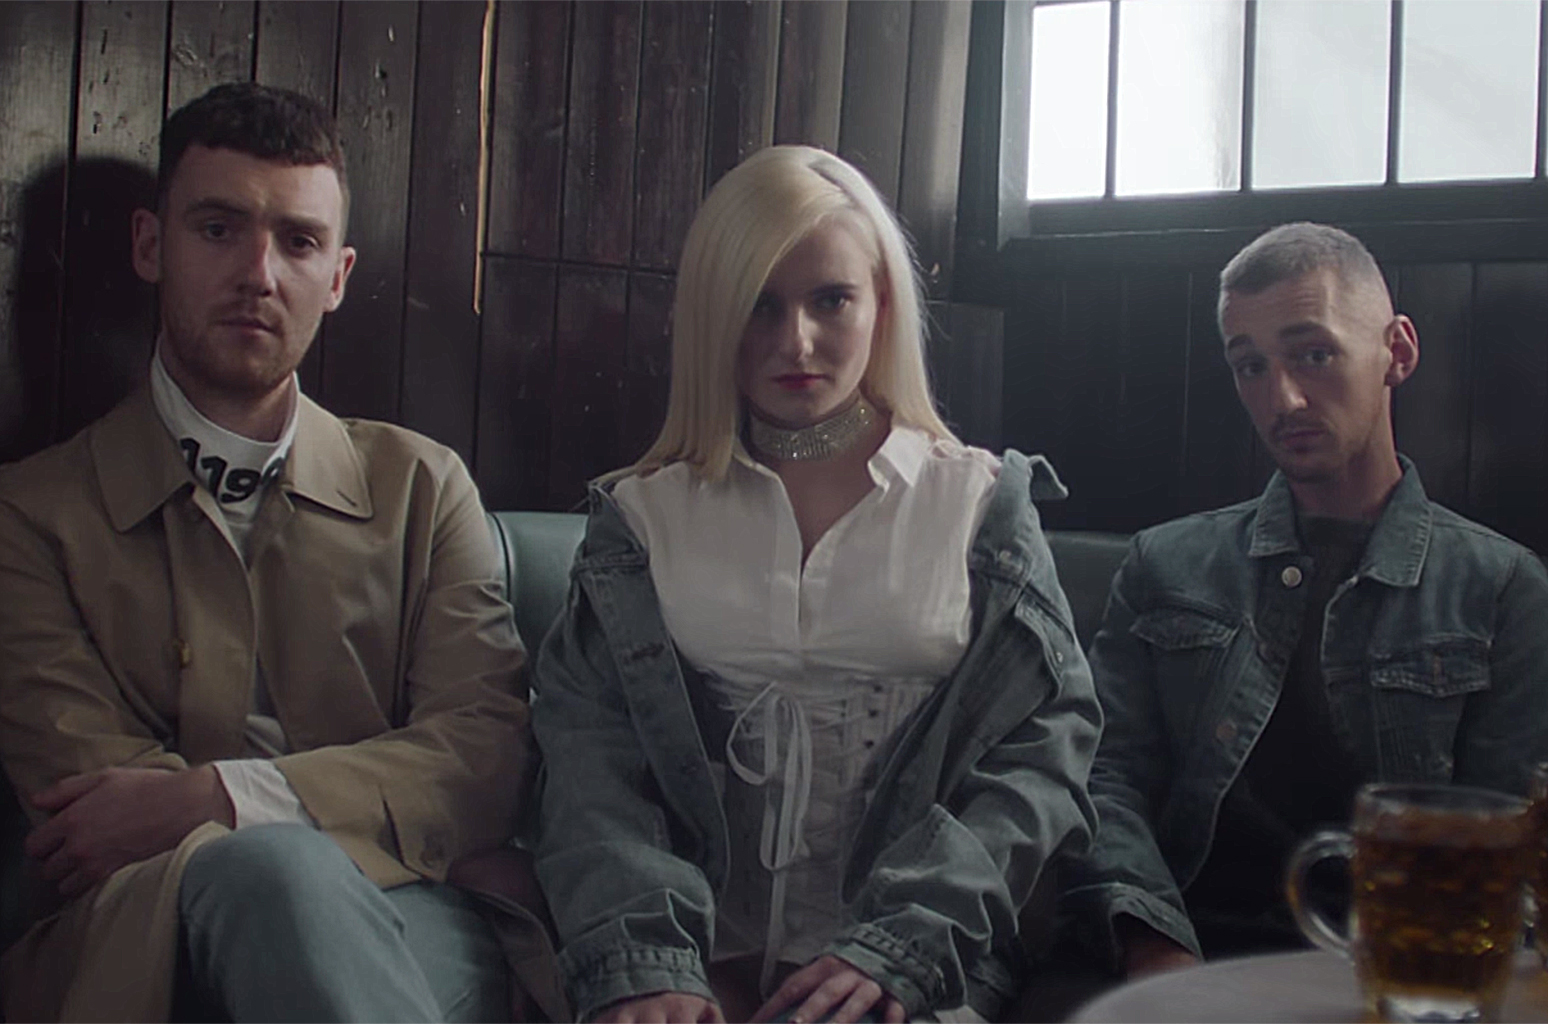 clean-bandit-rockabye-vid-still-2016-billboard-1548